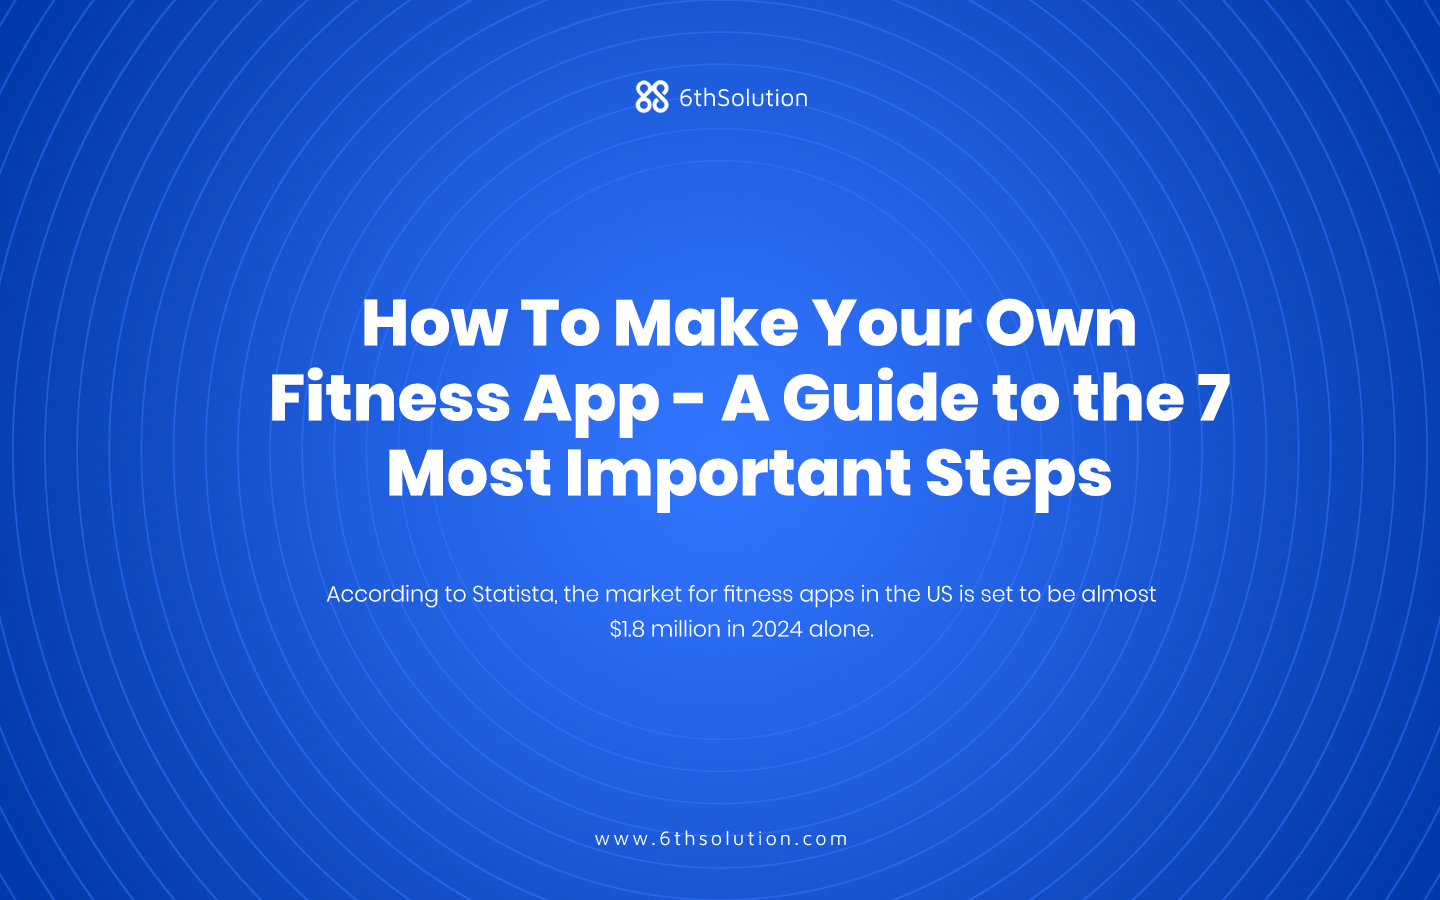 Your Own Fitness App